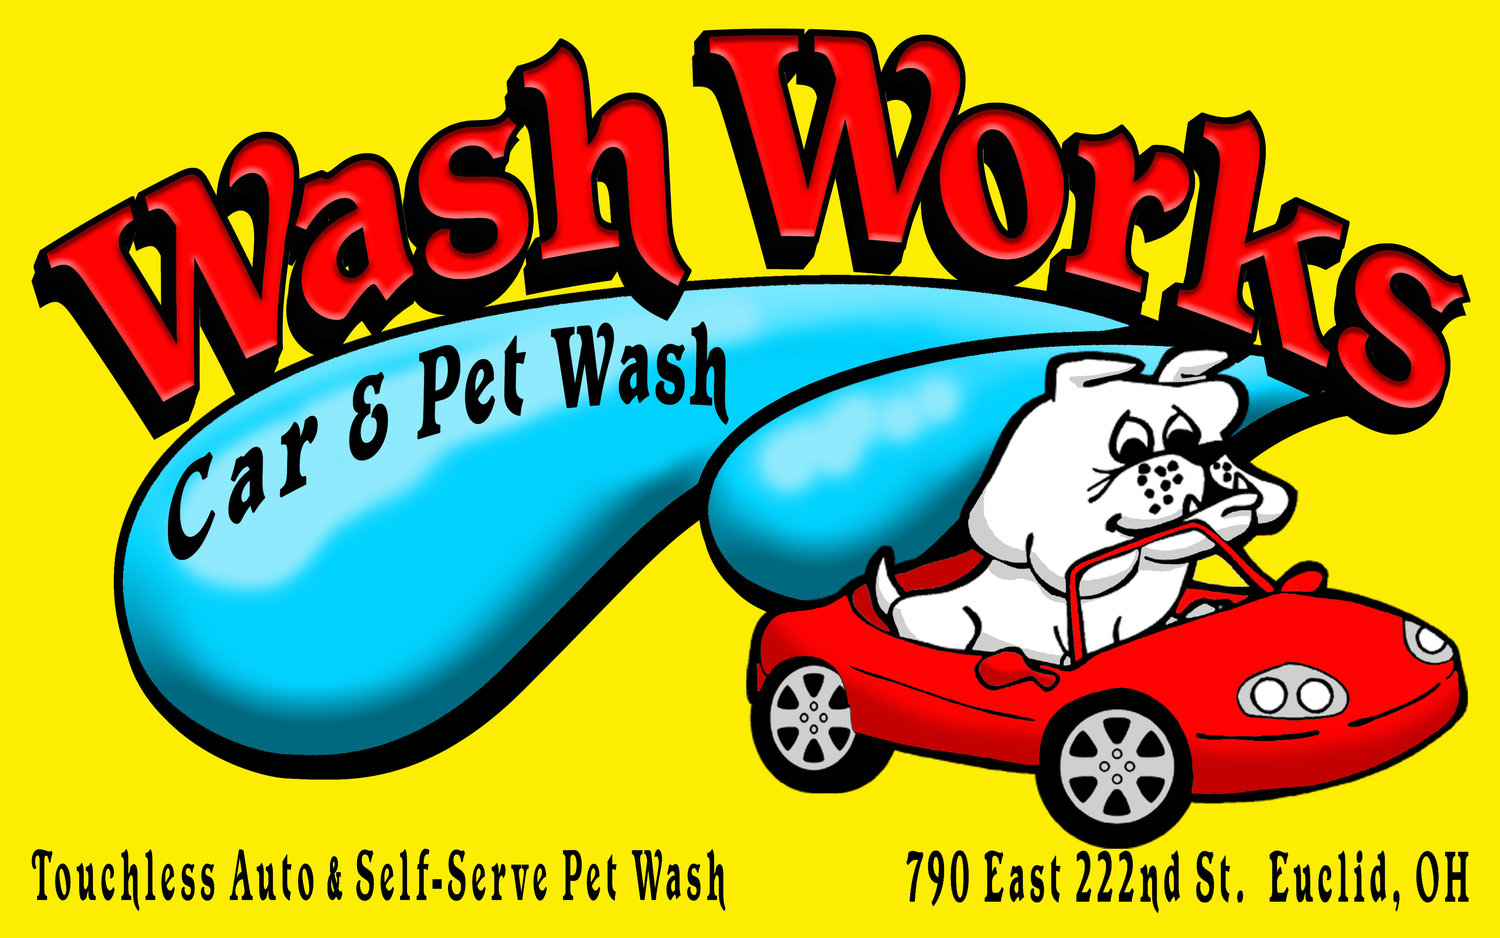 Wash works car pet wash wash works car and pet wash wash works car pet wash solutioingenieria Image collections